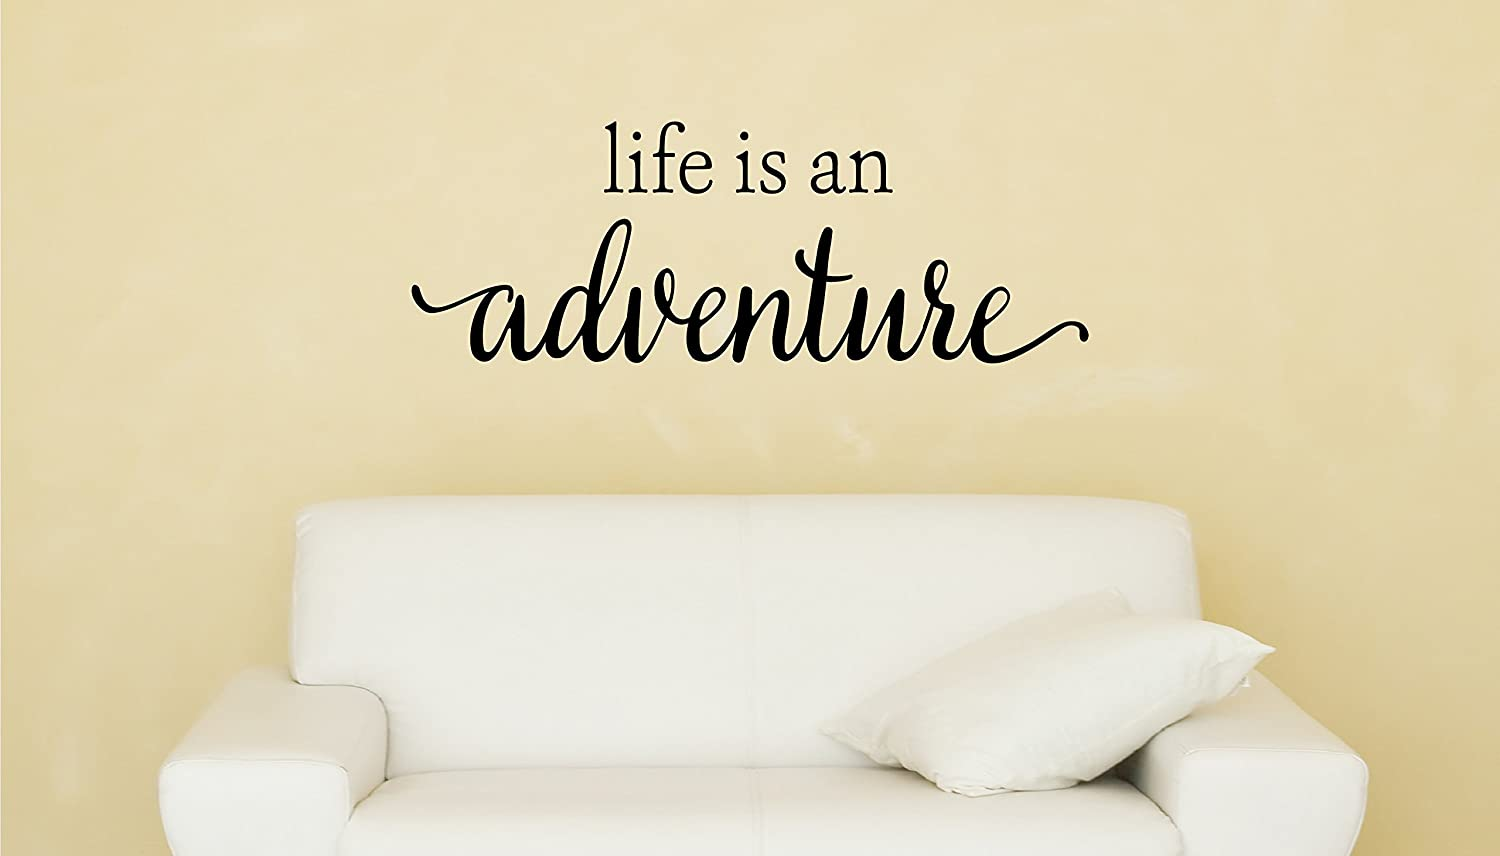 Amazon.com: Davis Instruments Life Is An Adventure Wall Decal: Home ...